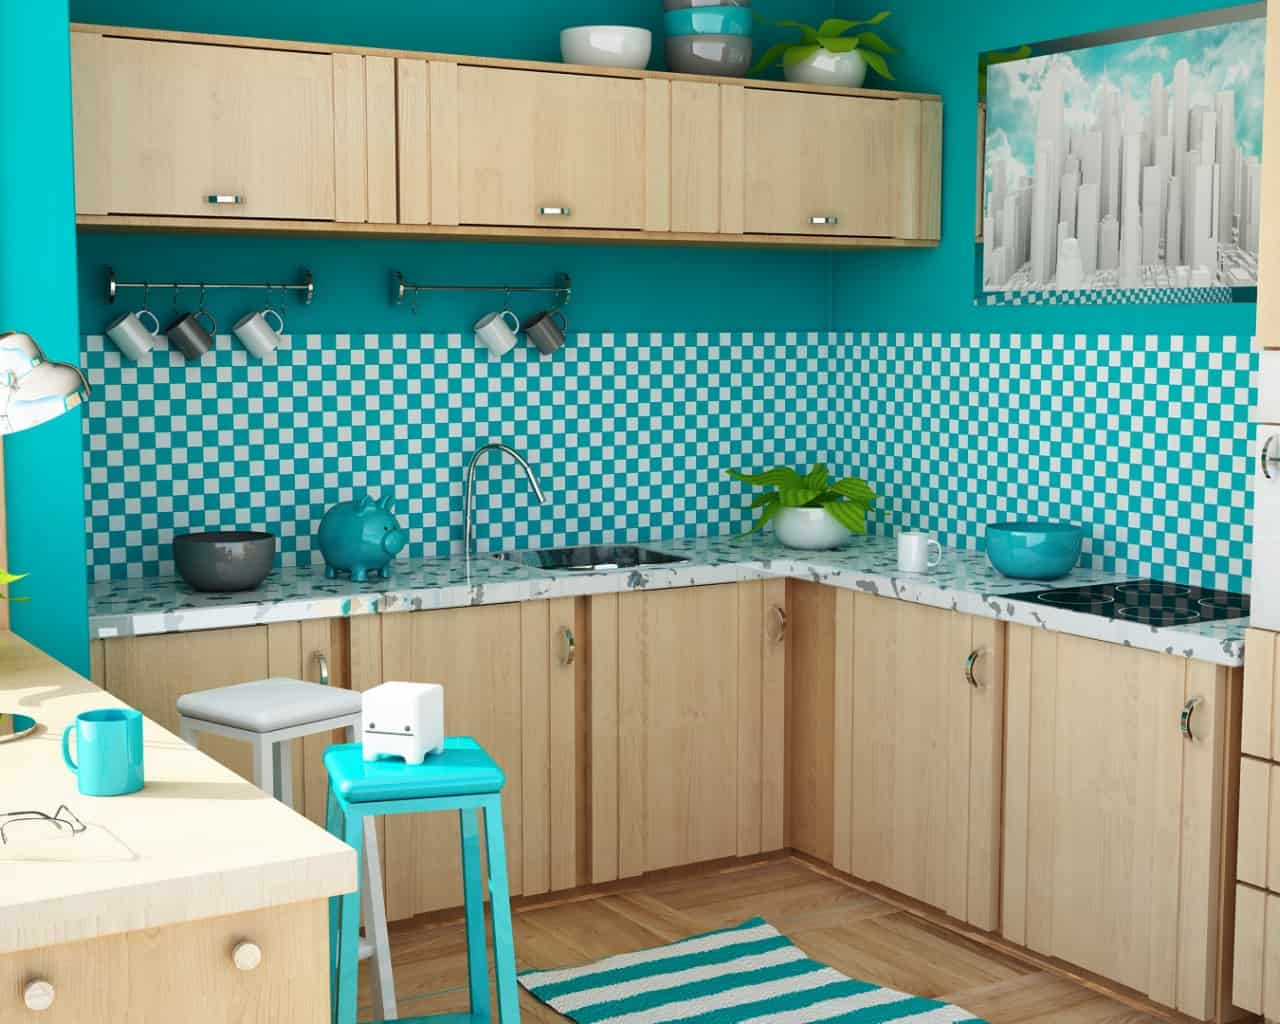 Bubble Gum Color retro kitchen ideas